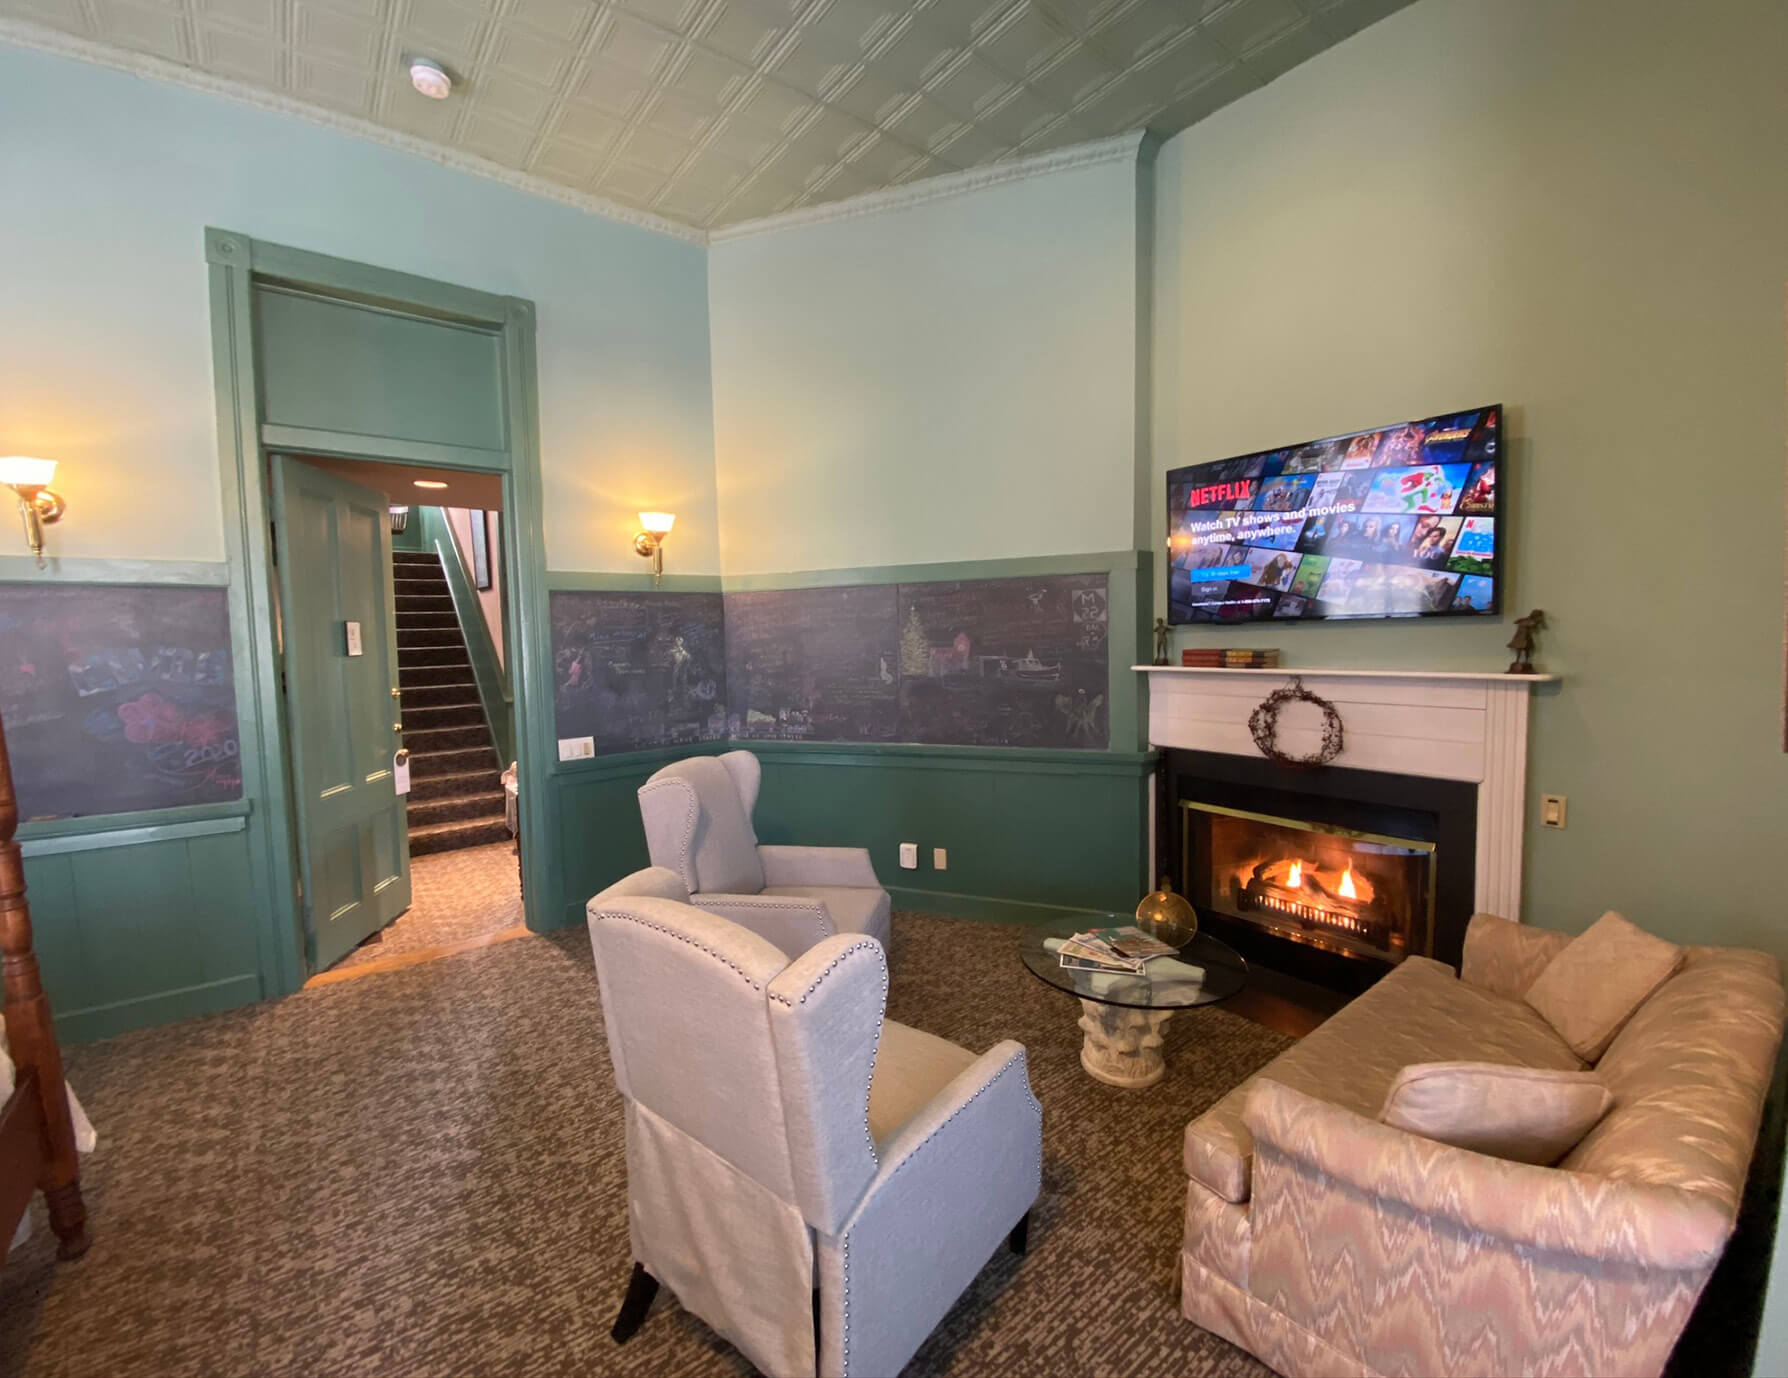 La Sedgwick seating area with fireplace and TV